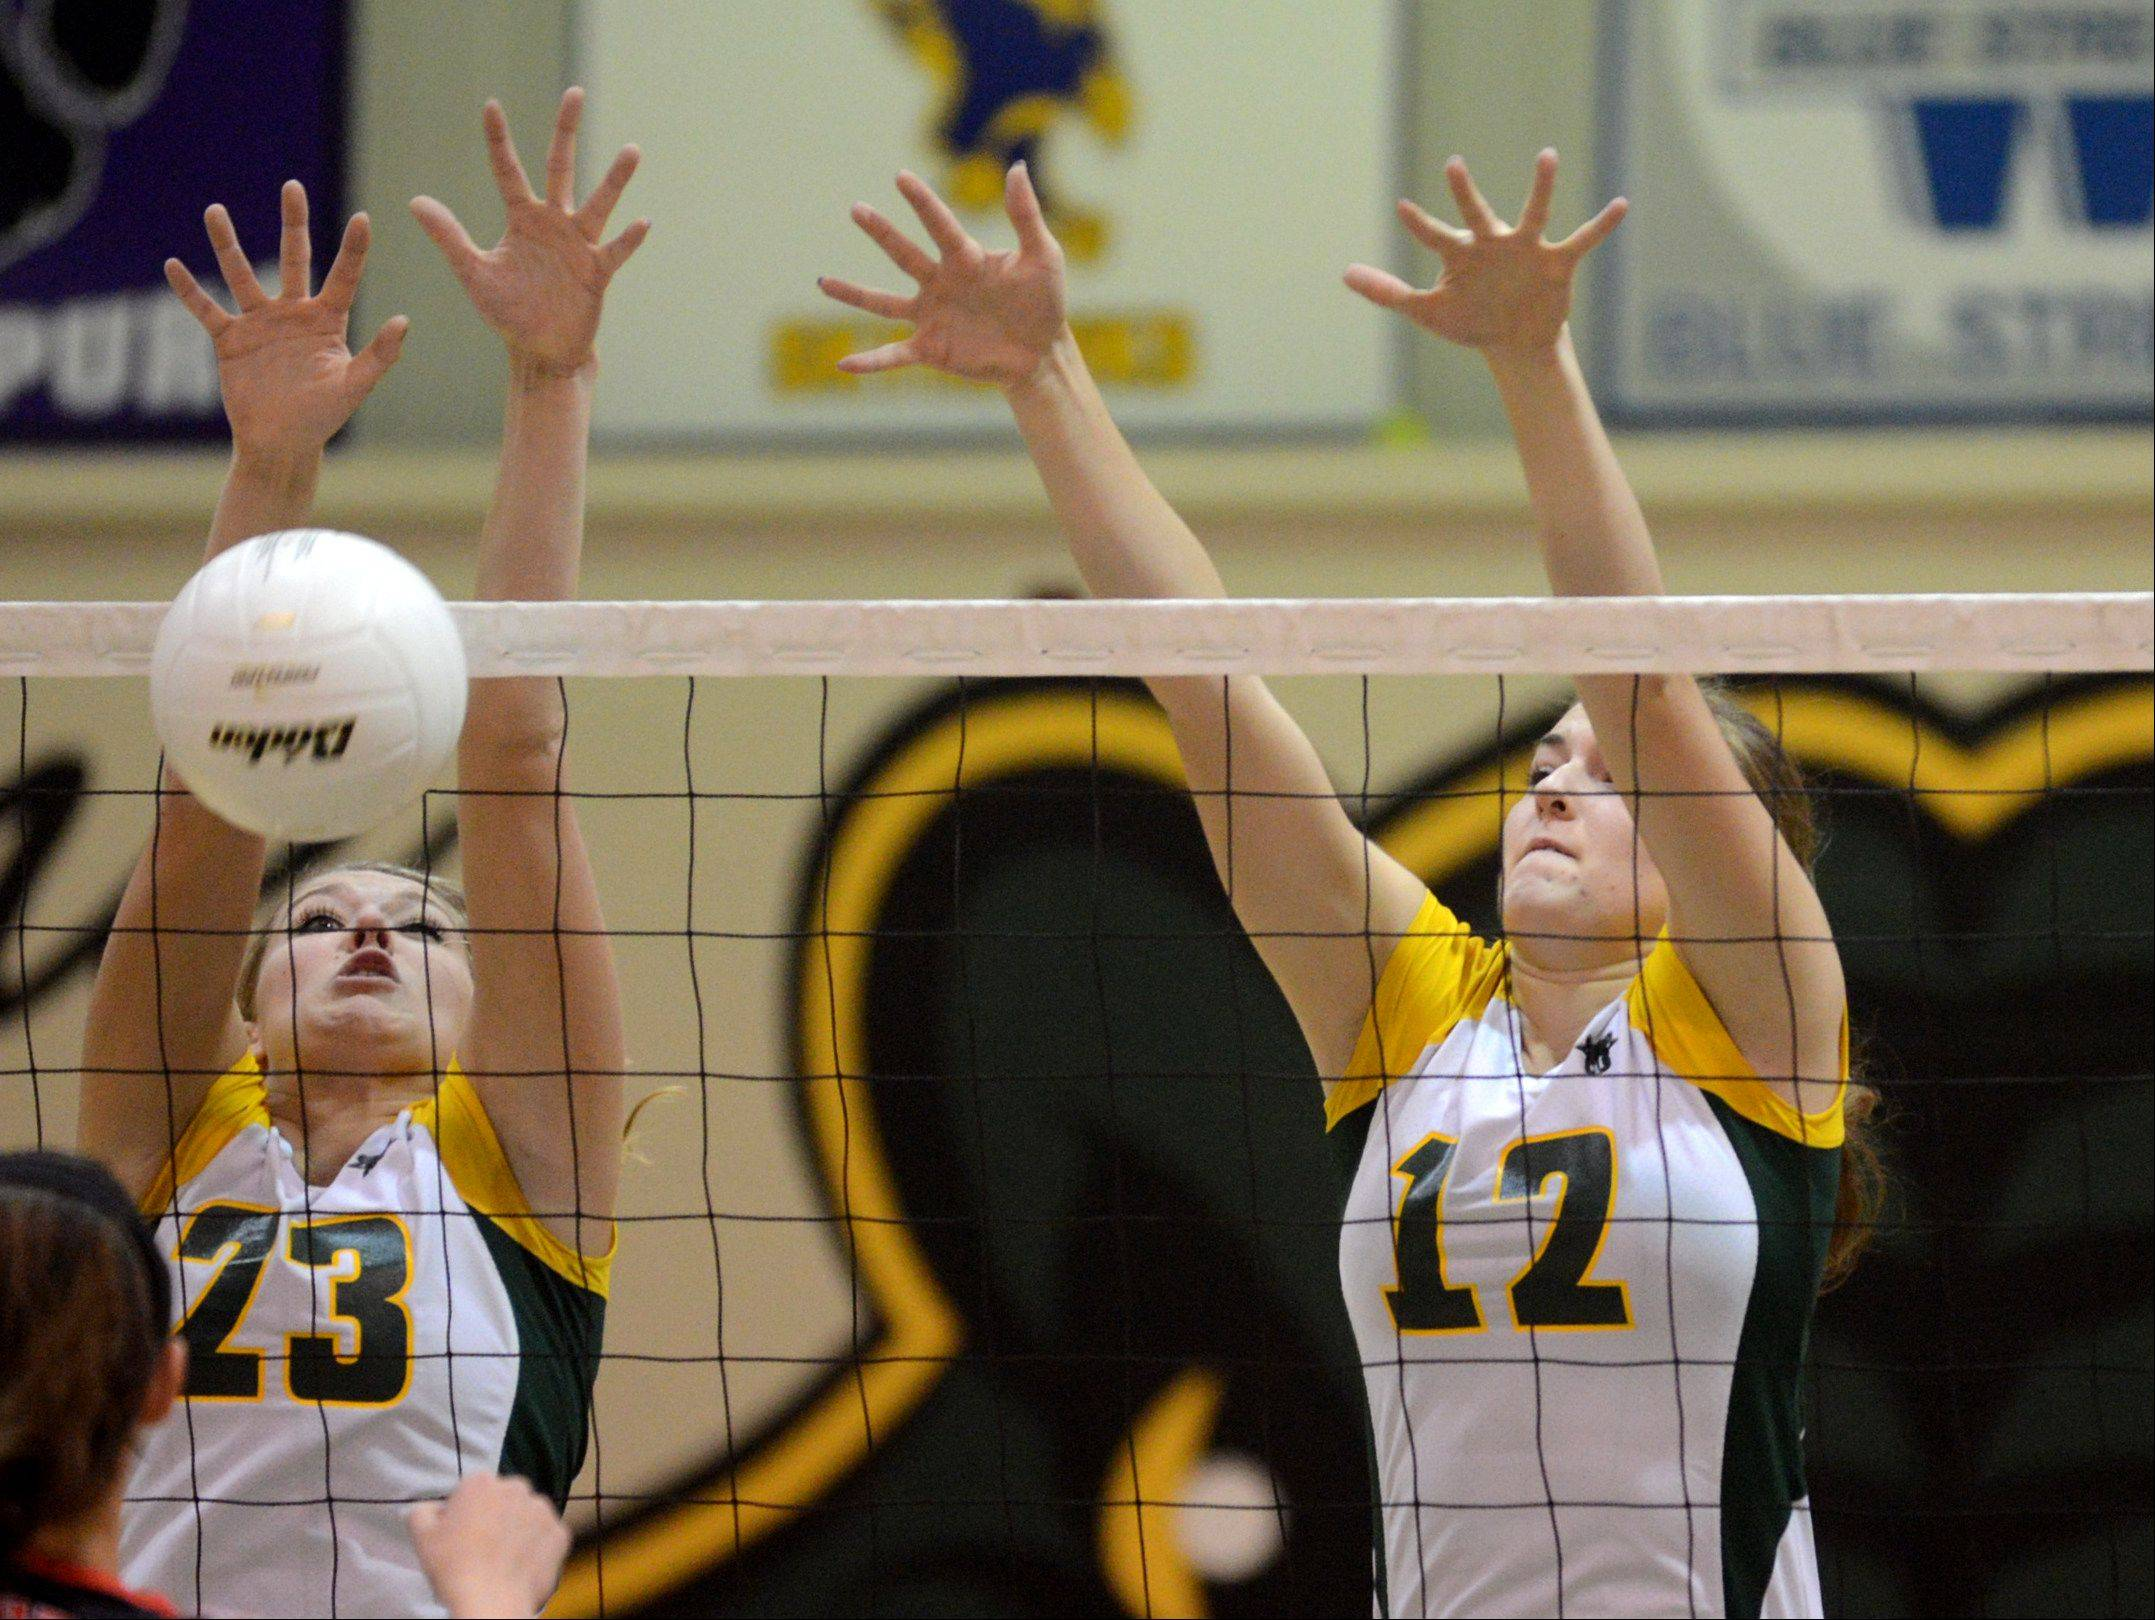 Crystal Lake South's Sara Mickow, left, and Nicole Slimko, right, block against Huntley during varsity volleyball at Crystal Lake on Thursday night.